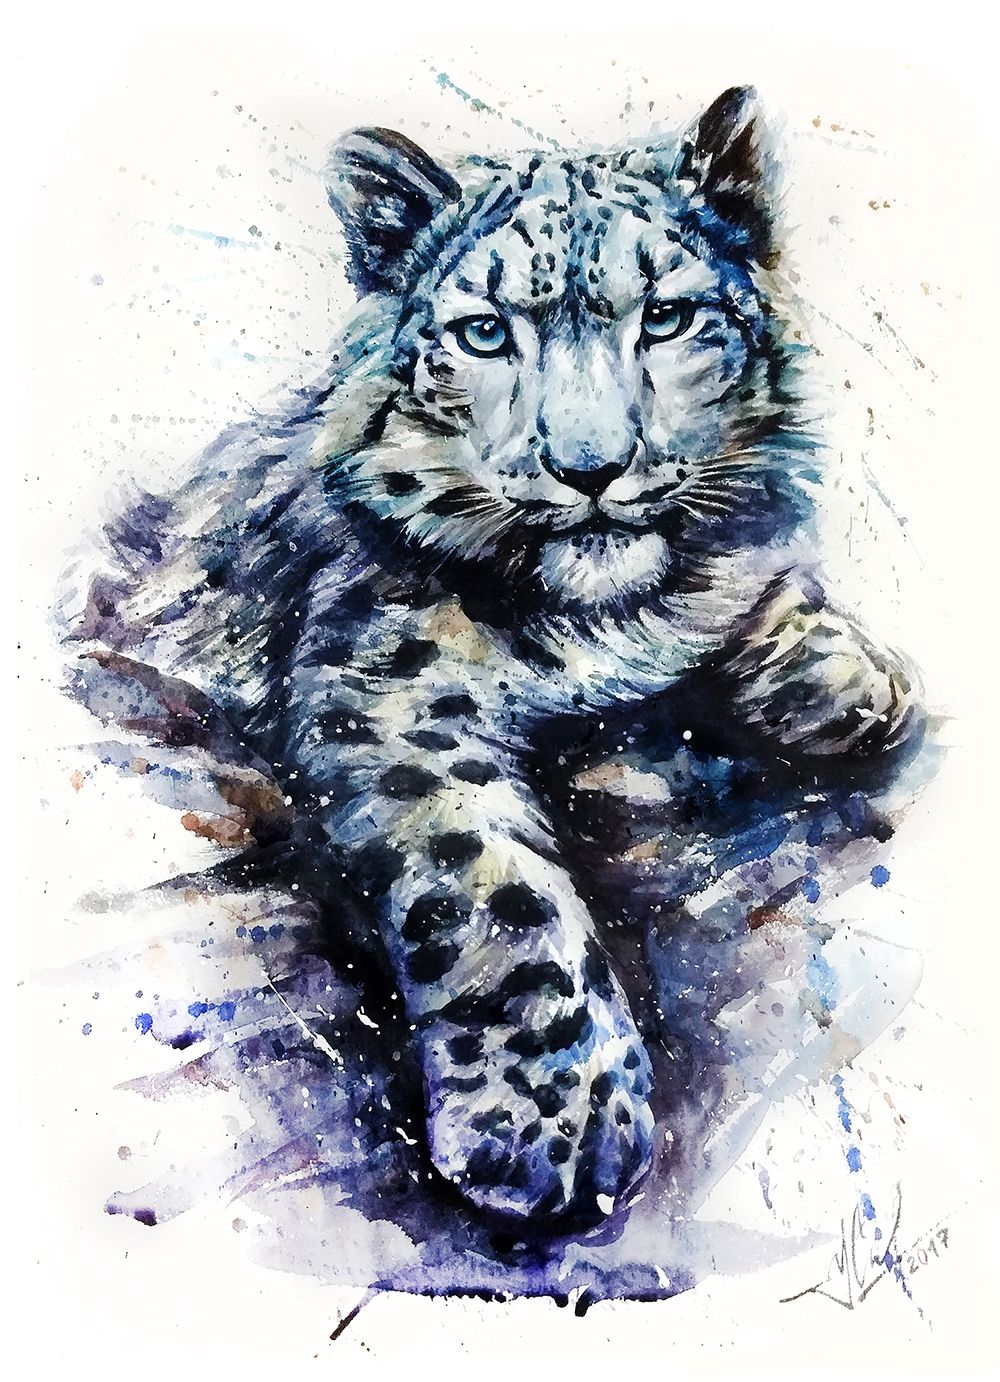 Snow Leopard Animals Watercolor Wild Cat Illustration